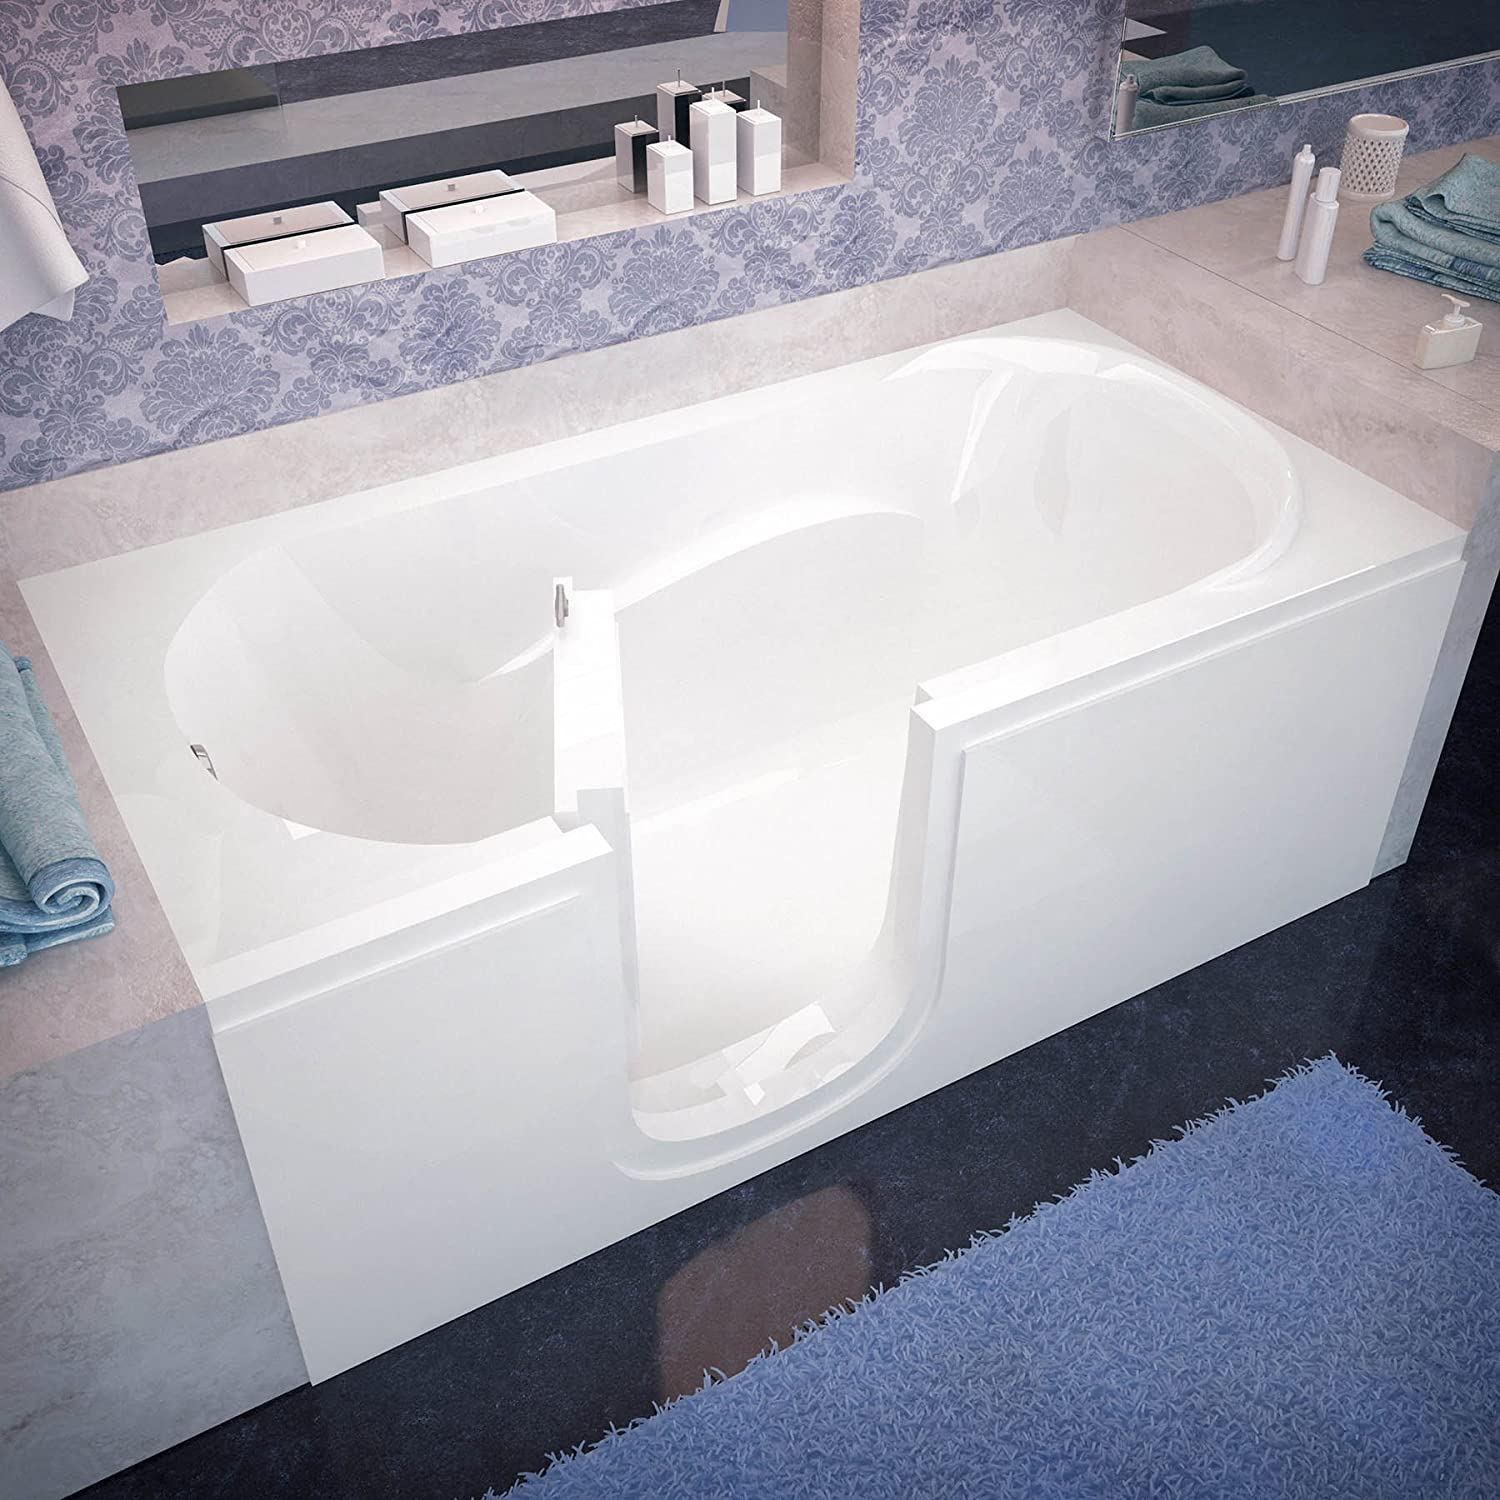 spa world venzi vz3060silws rectangular soaking walk in bathtub 30x60 left drain white amazoncom - Step In Bathtub